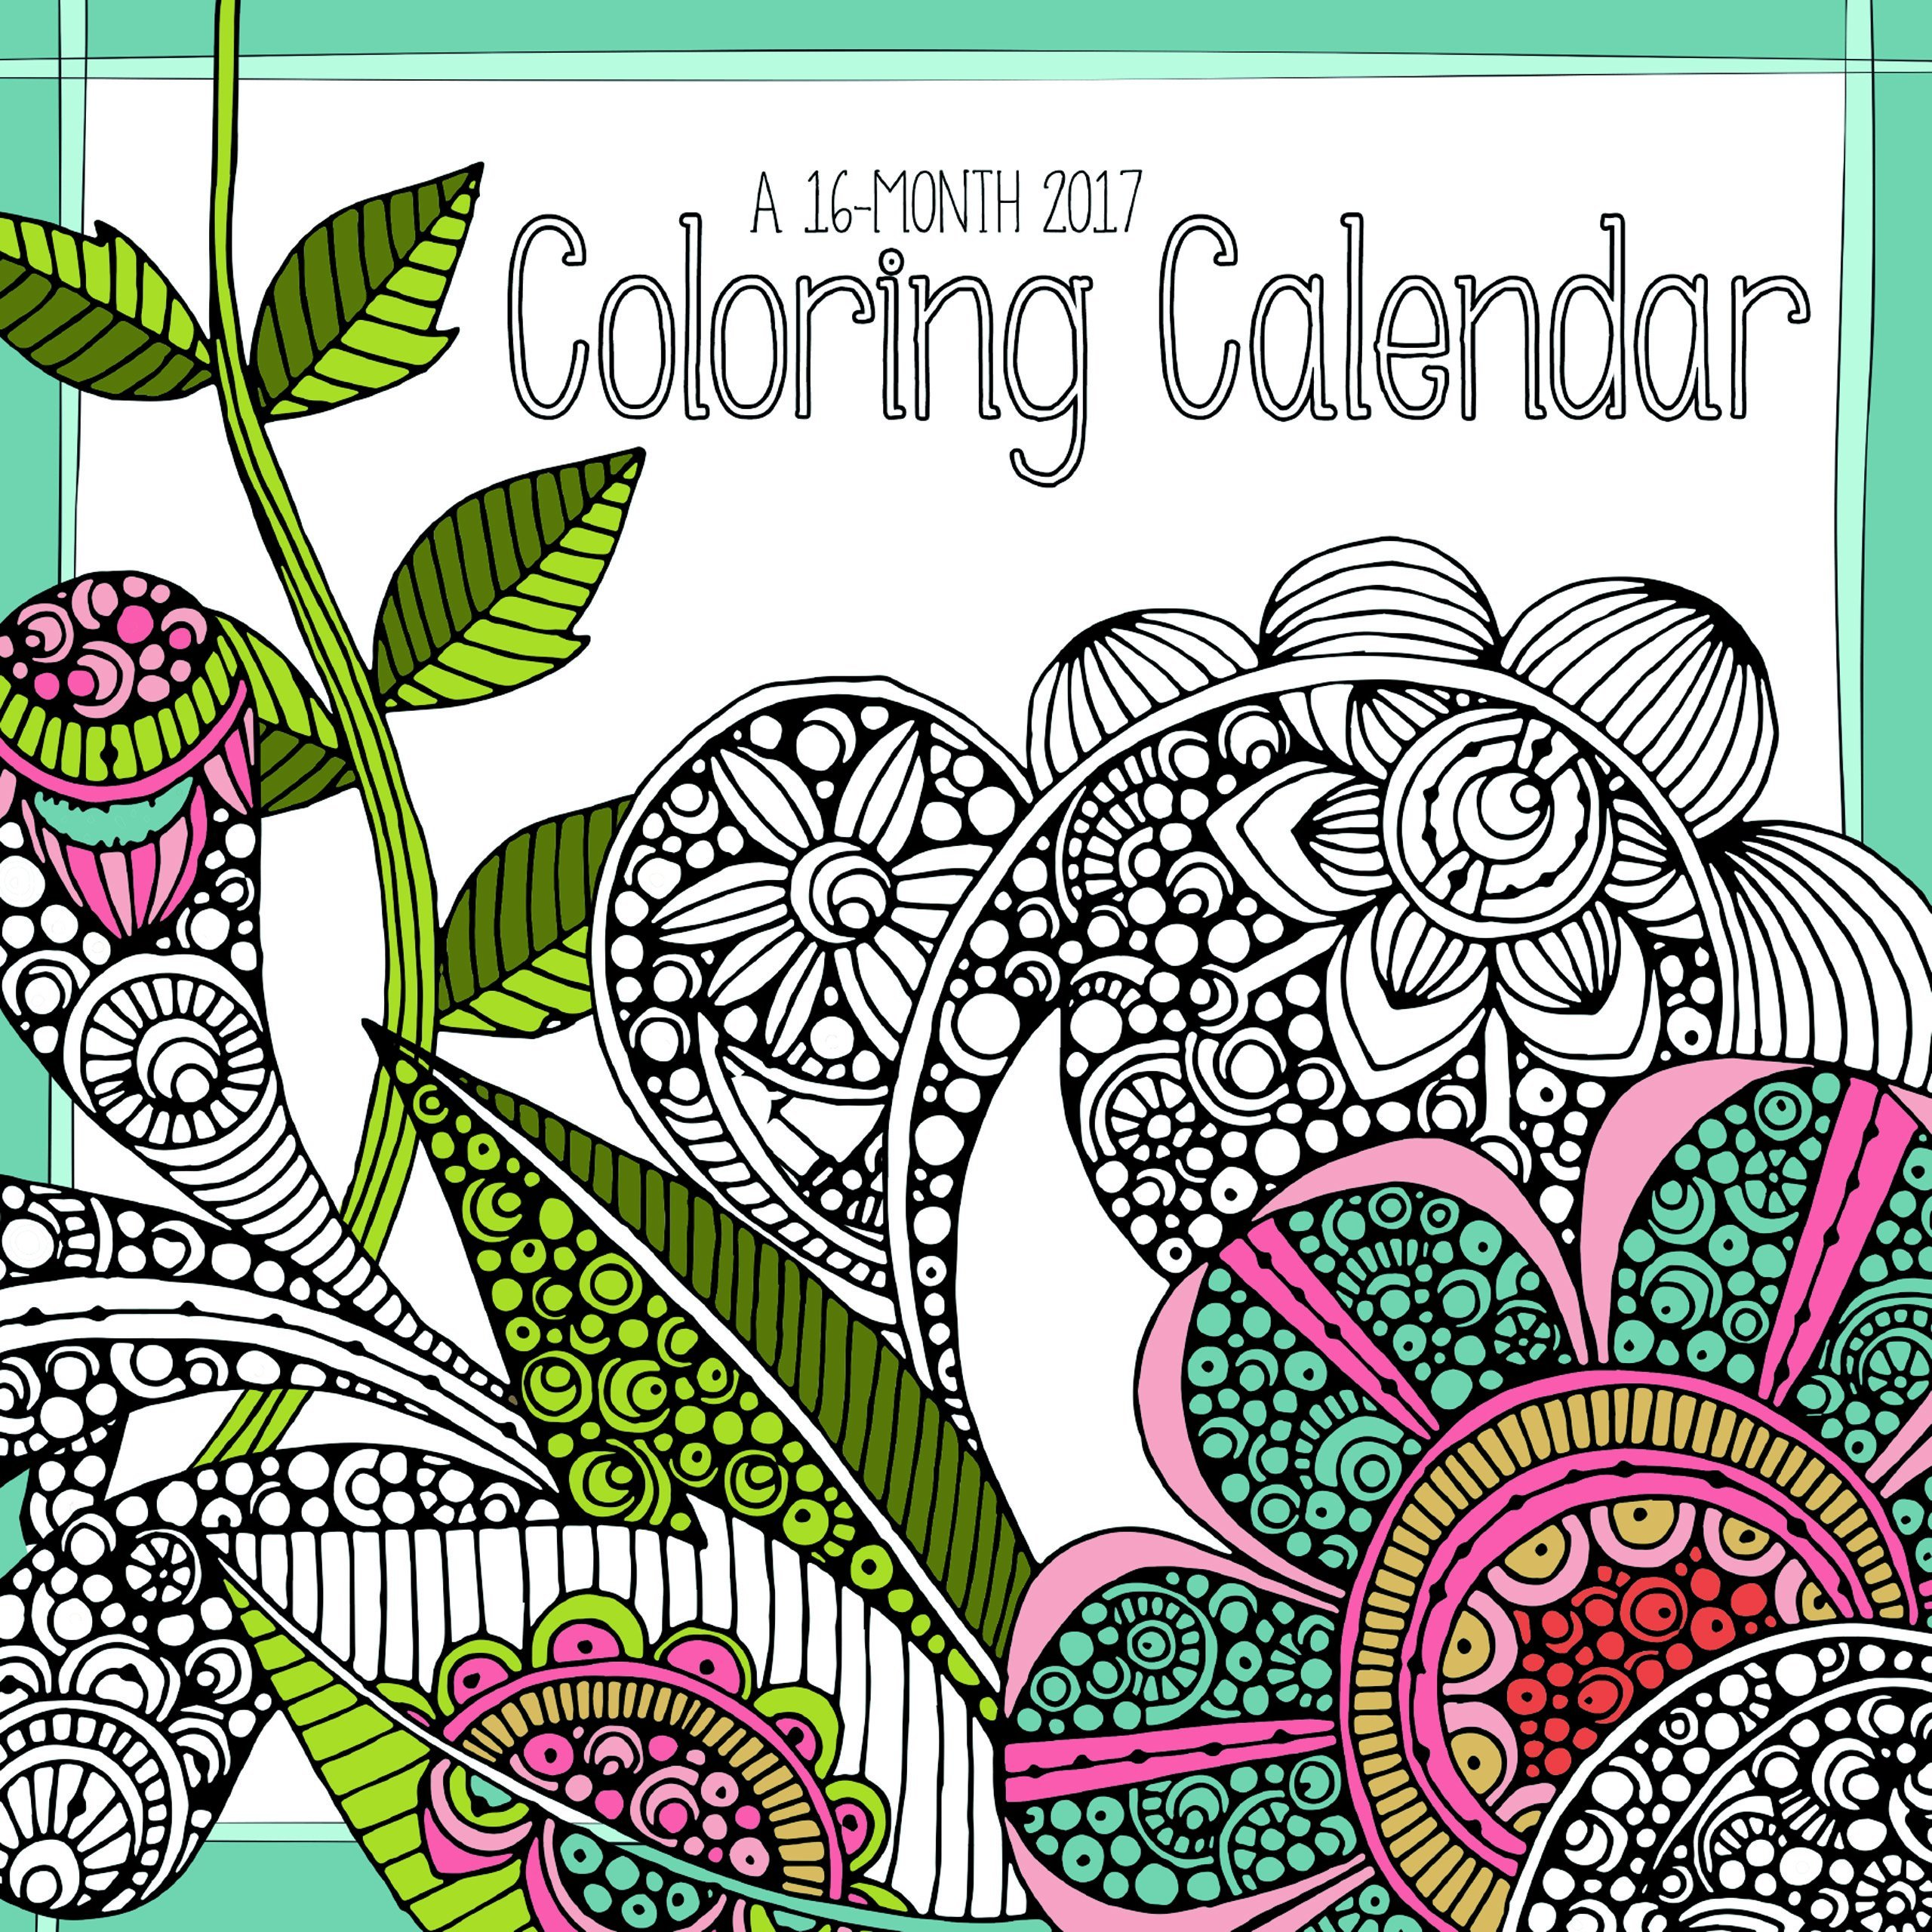 We Analyzed 725 Reviews To Find THE BEST Coloring Calendar 2016